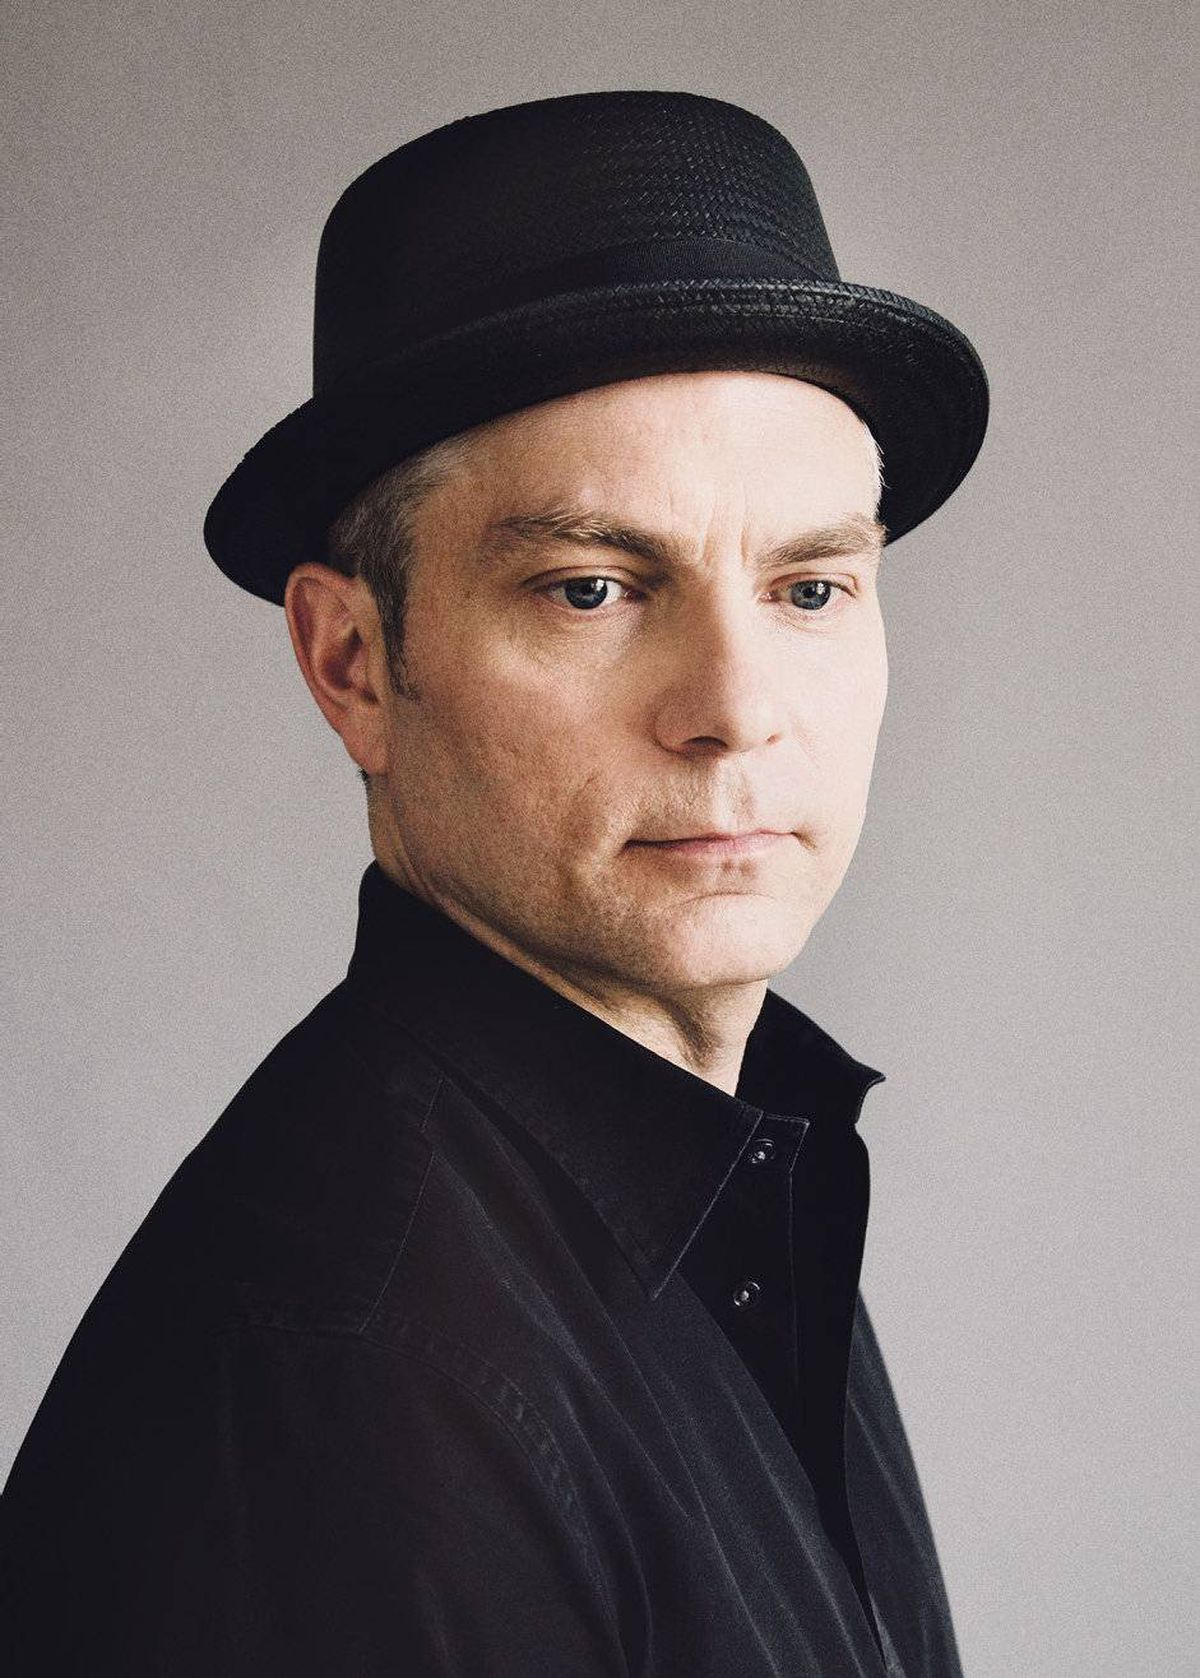 'For me, men wearing hats is a transportation to the world of film noir, of detectives and agents and bad guys all finding the right colour and style and tilt angle for their head wear. For those strong, silent types, a hat is an introduction and, sometimes, a warning.' -Andrew Pyper, bestselling author of The Guardians Big It Up porkpie hat, $90 through www.bigitup.com.